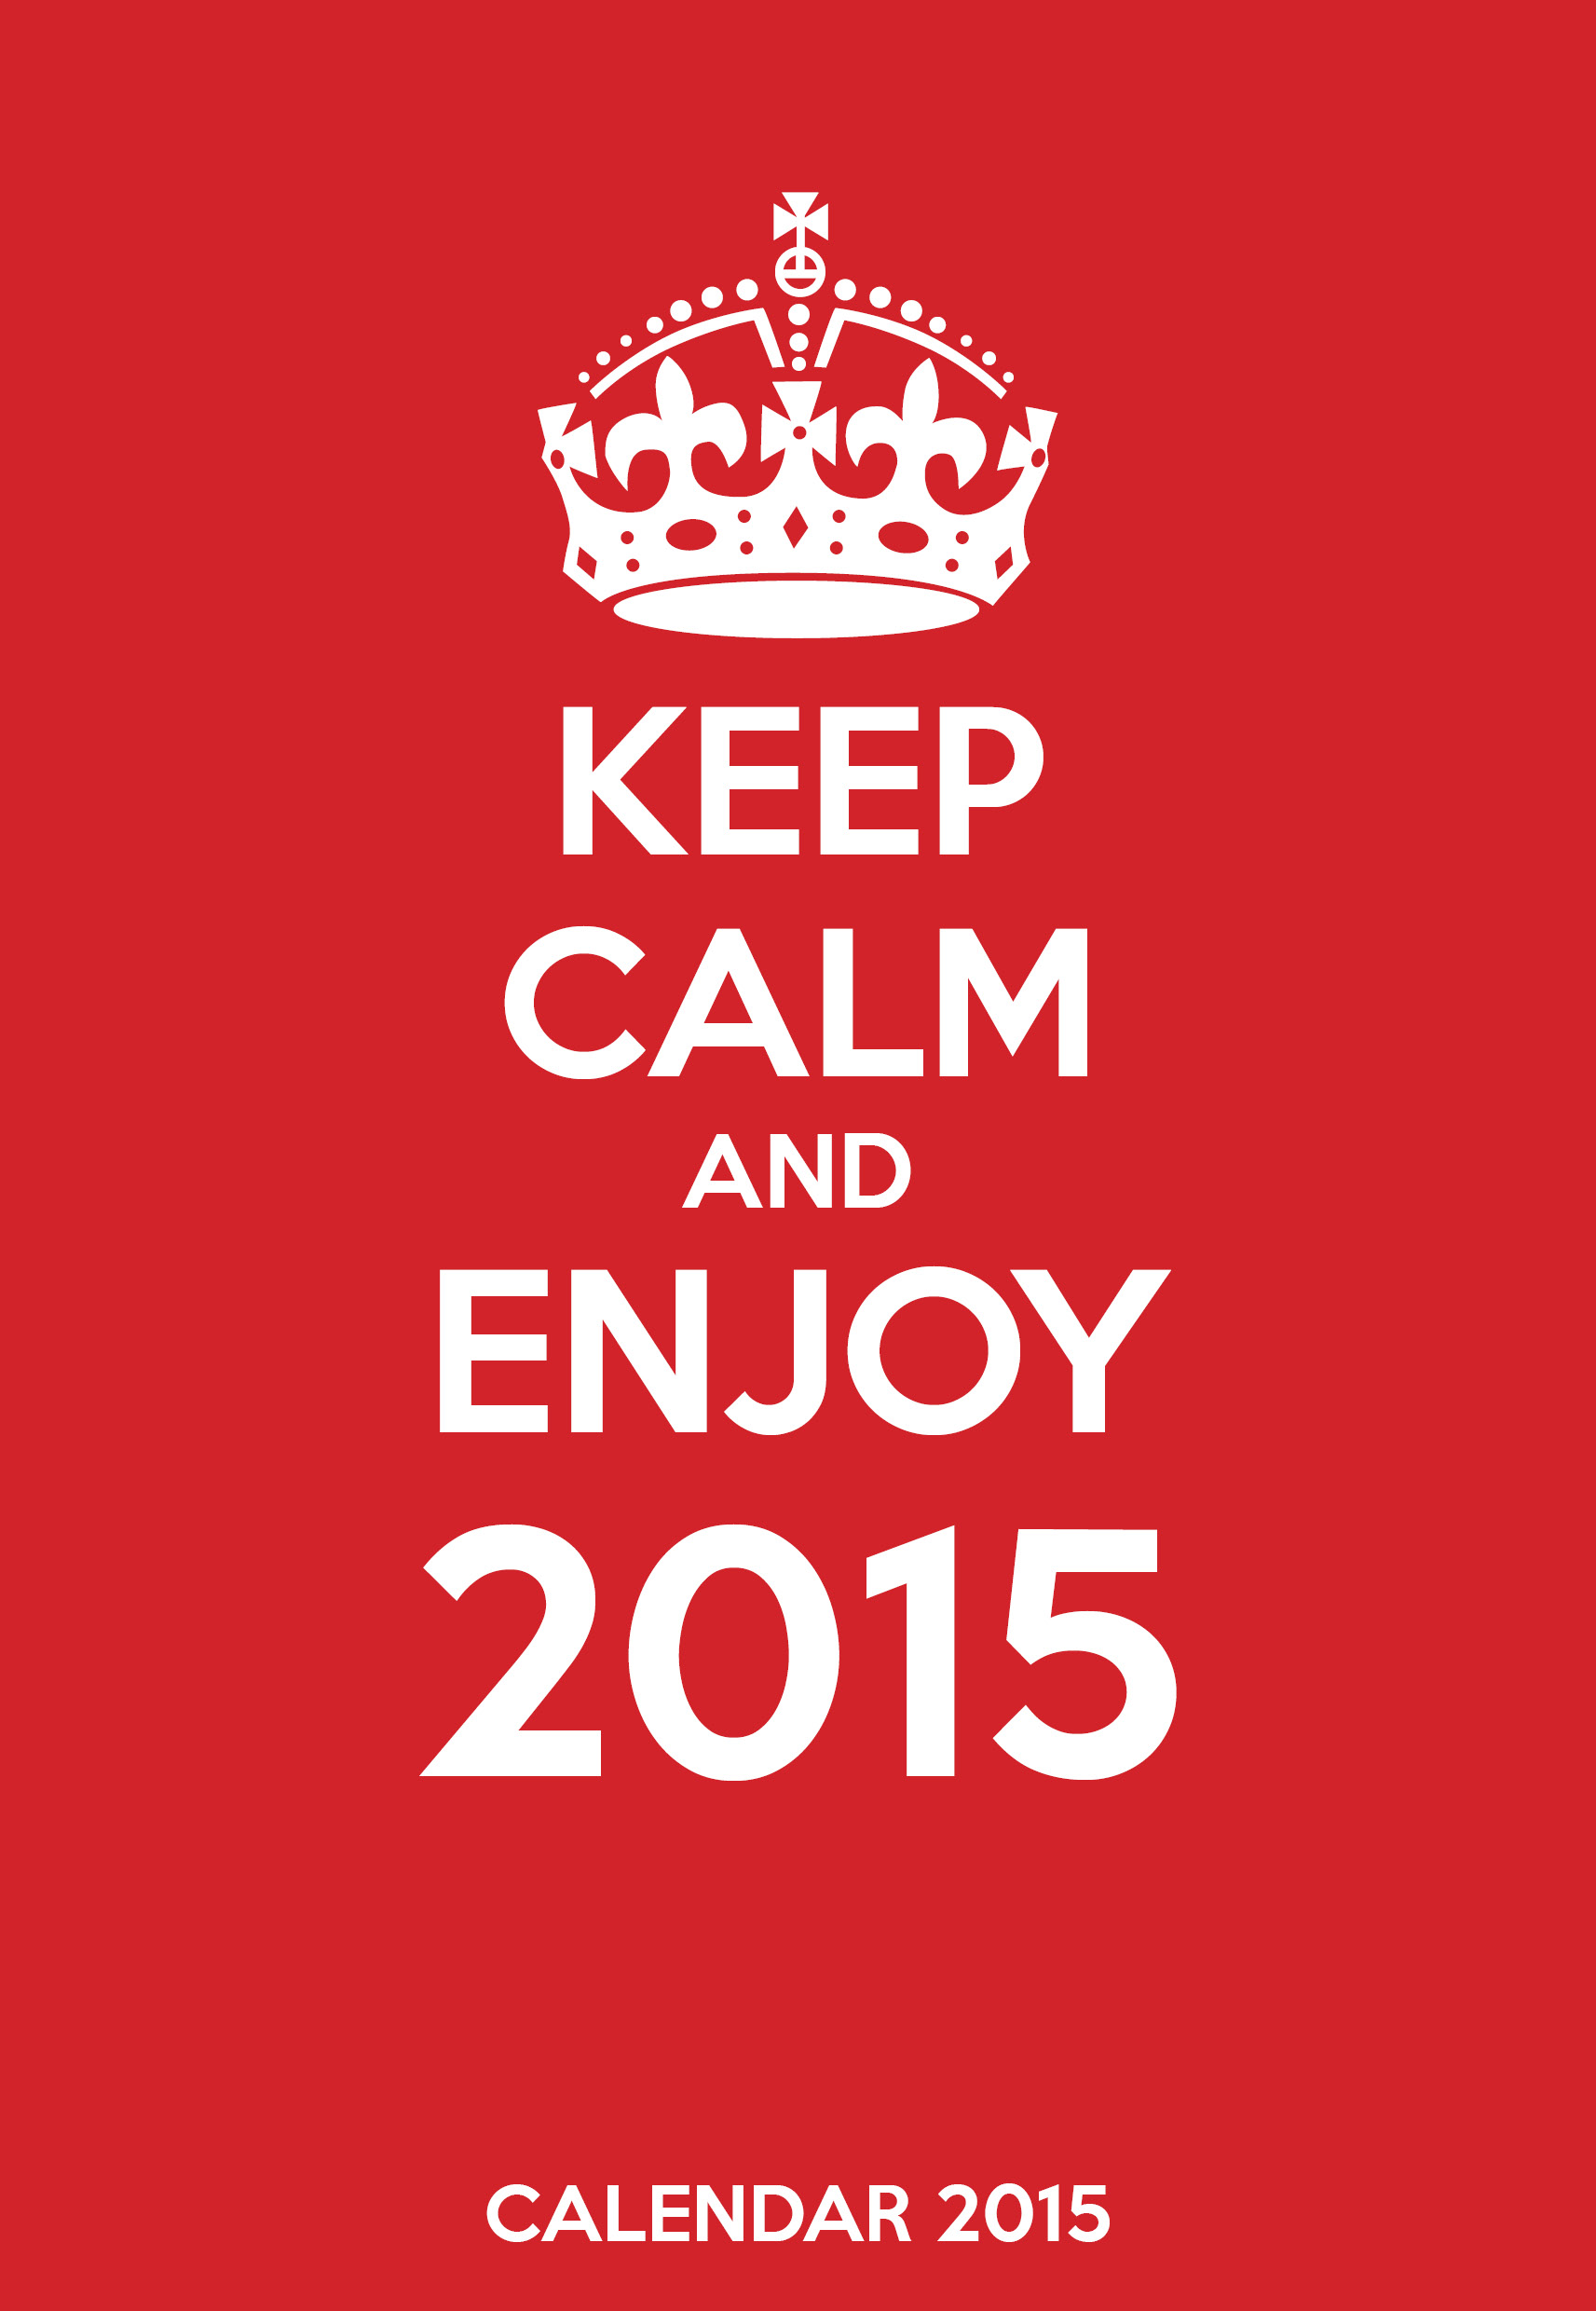 calendario_clandario_2015_keep_calm_and_enjoy_28db85d7_8054242558524